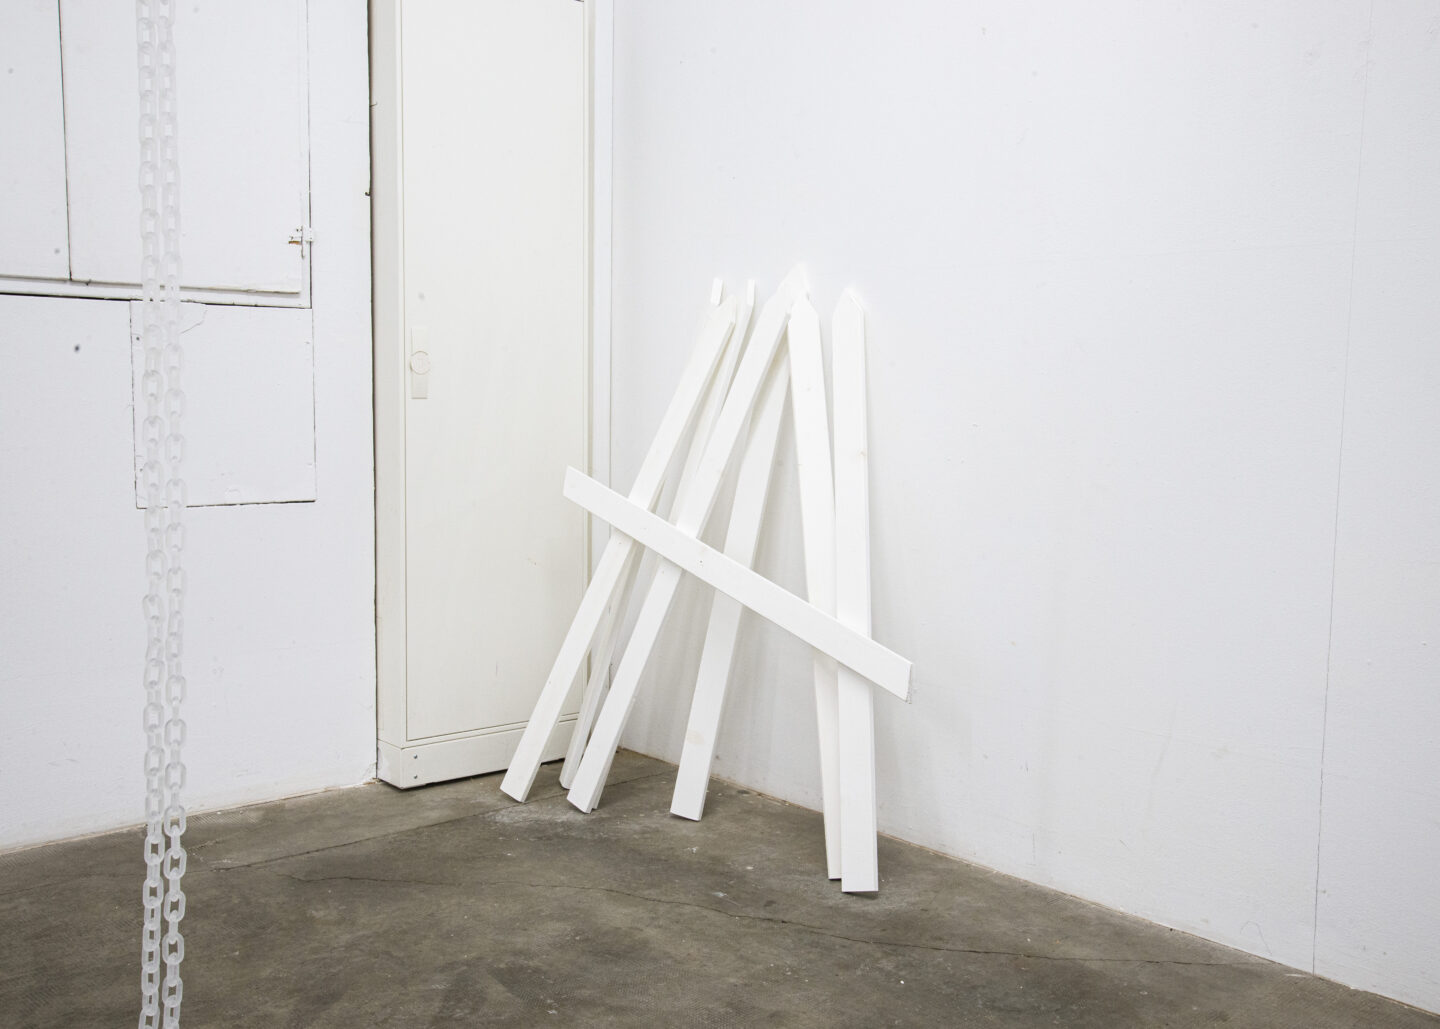 Exhibition View Noémie Degen and Simon Jaton Soloshow «Nodding Out To Rising Mist» at Tunnel Tunnel, Lausanne, 2019 / Courtesy: the artists